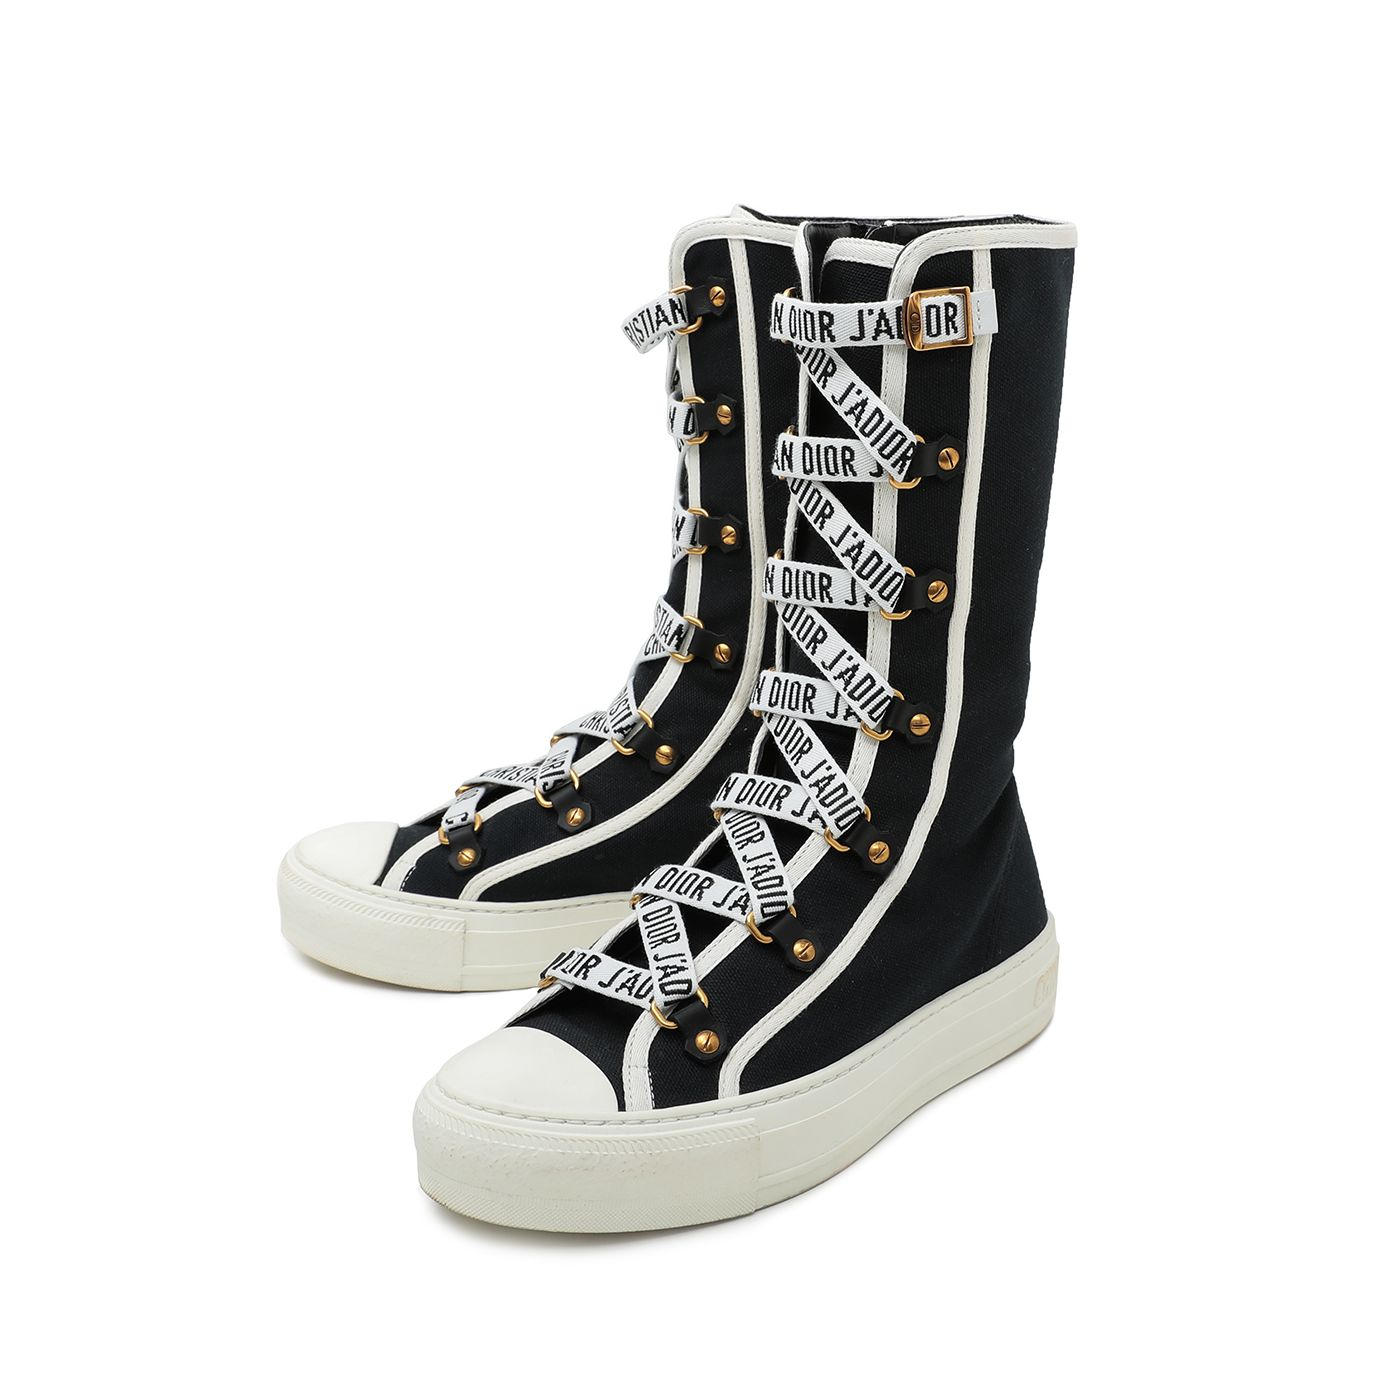 Christian Dior Navy Blue Walk'n Dior Sneakers Boot 36